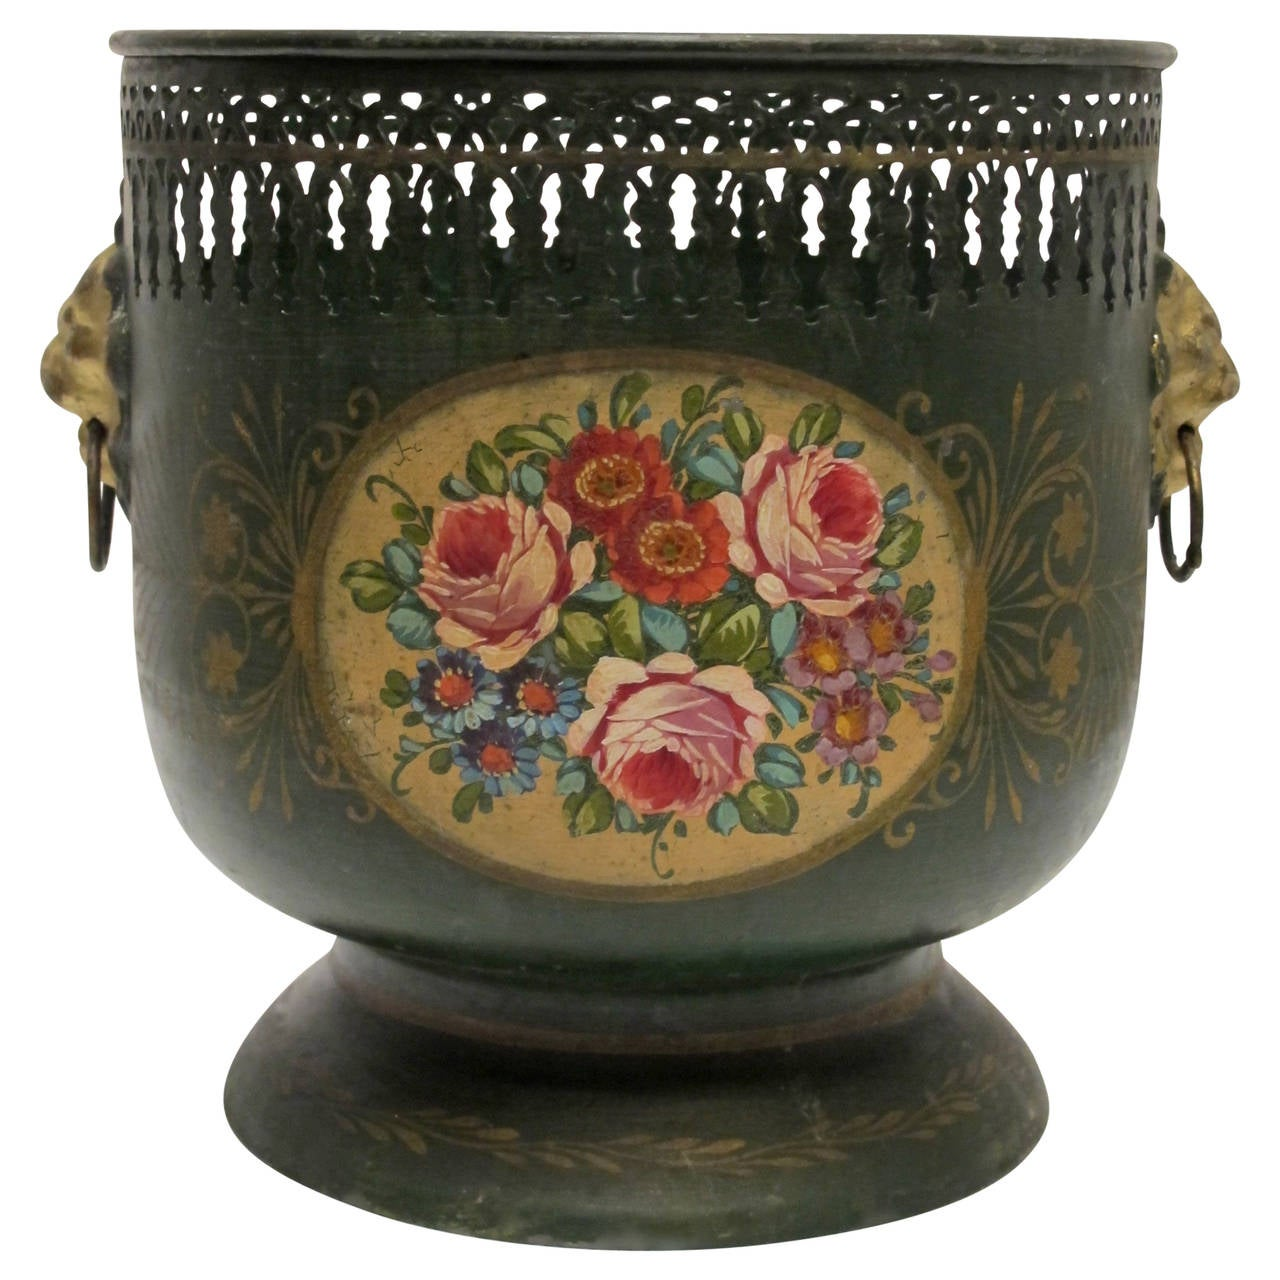 Green Tole Cache Pot with Painted Flowers, English, 19th Century